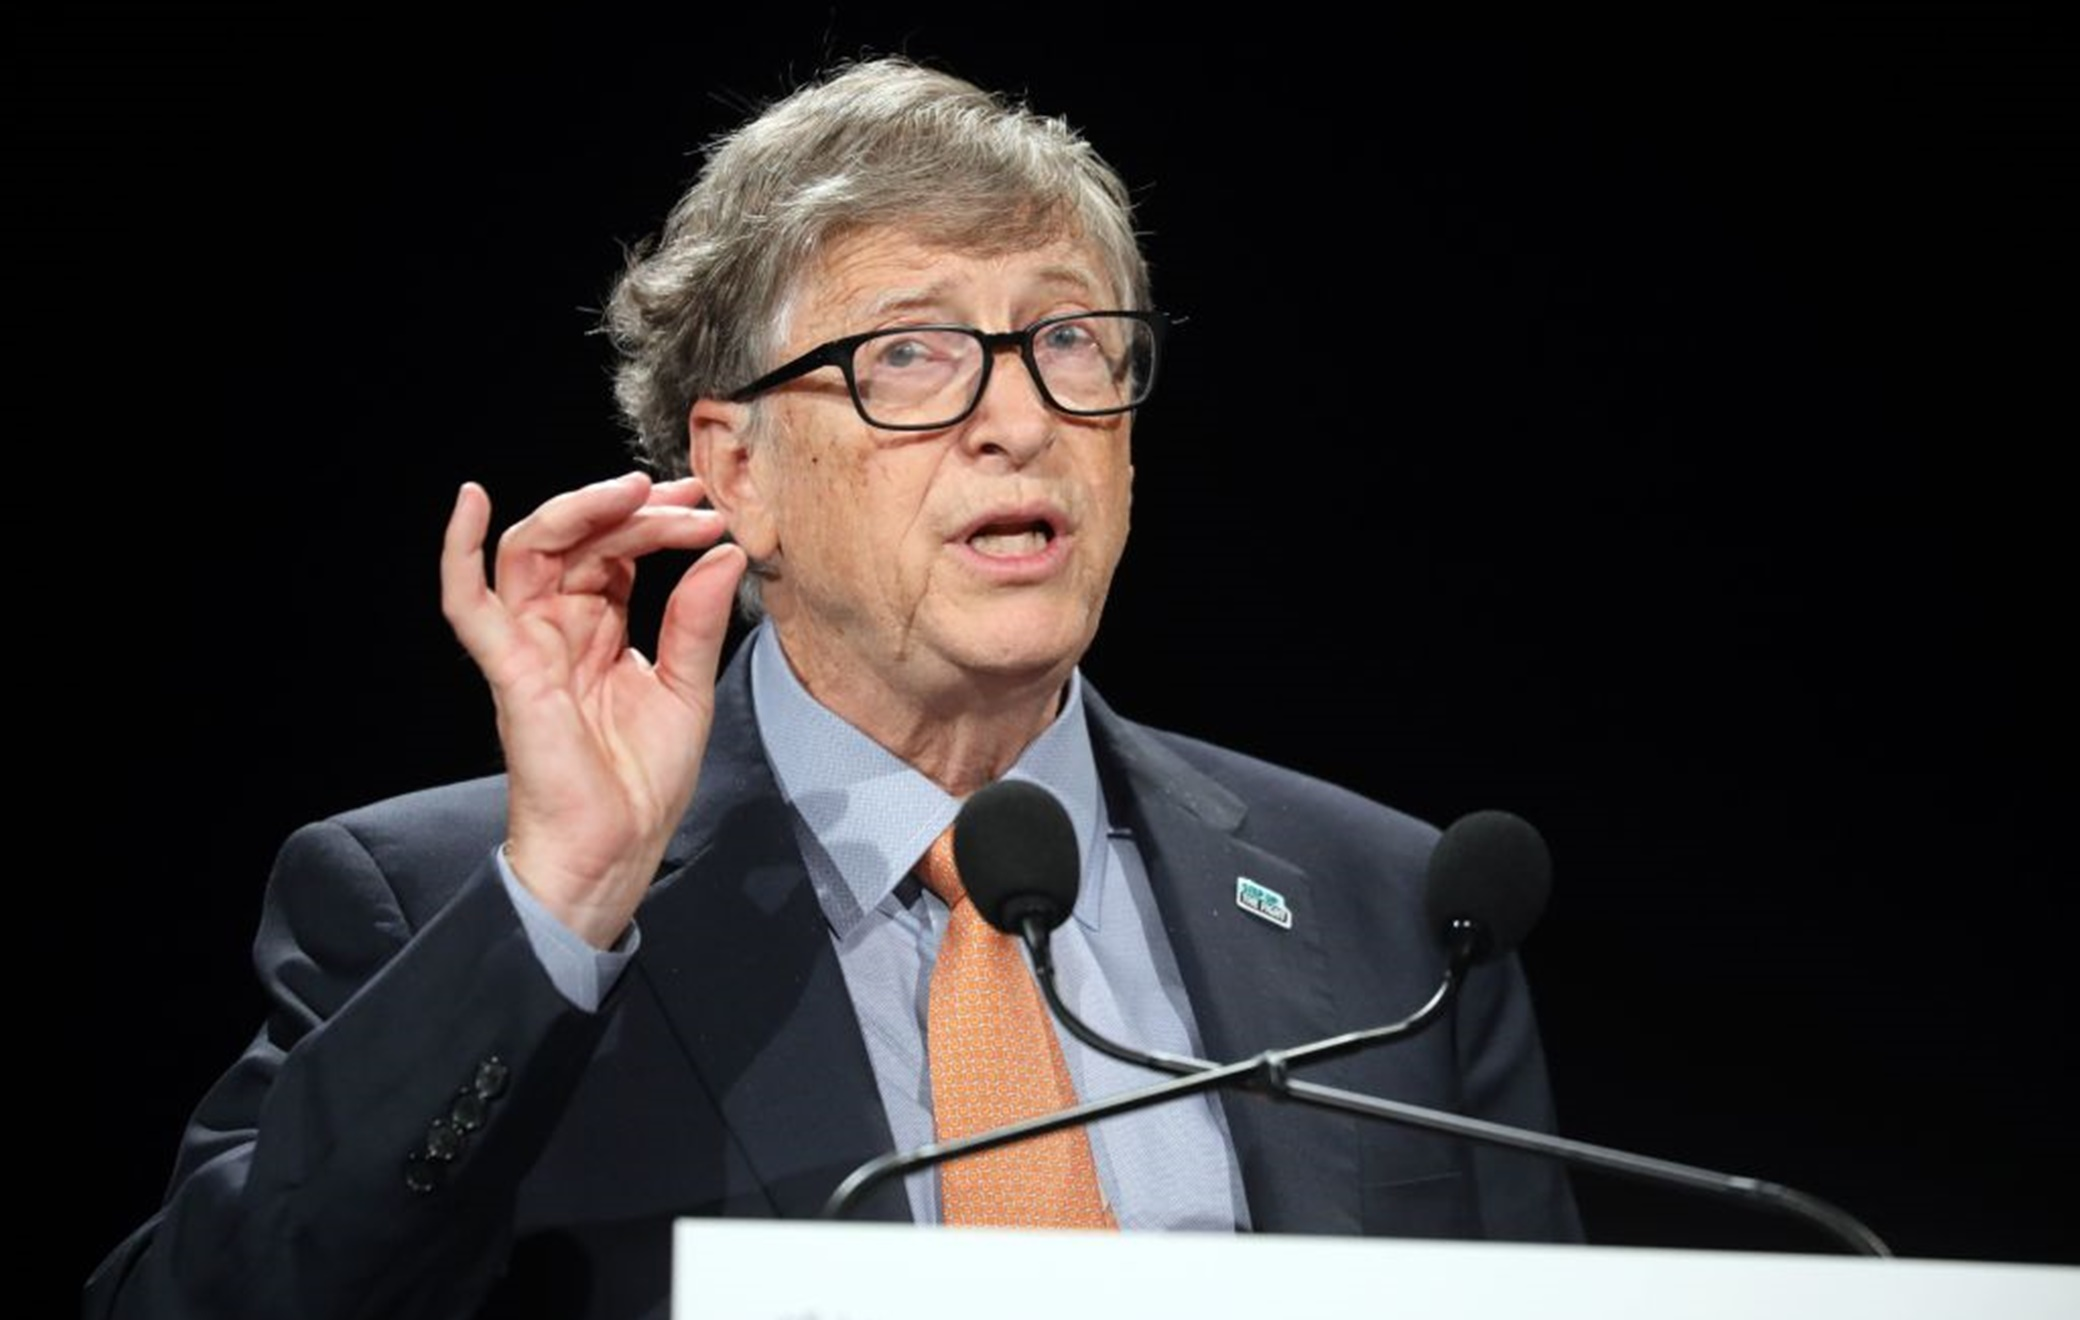 Microsoft founder, Co-Chairman of the Bill & Melinda Gates Foundation, Bill Gates delivers a speech during the conference of Global Fund to Fight HIV, Tuberculosis and Malaria on october 10, 2019, in Lyon, central eastern France. - The Global Fund to Fight AIDS, Tuberculosis and Malaria opened a drive to raise $14 billion to fight a global epidemics but face an uphill battle in the face of donor fatigue. (Photo by Ludovic MARIN / AFP) (Photo by LUDOVIC MARIN/AFP via Getty Images)